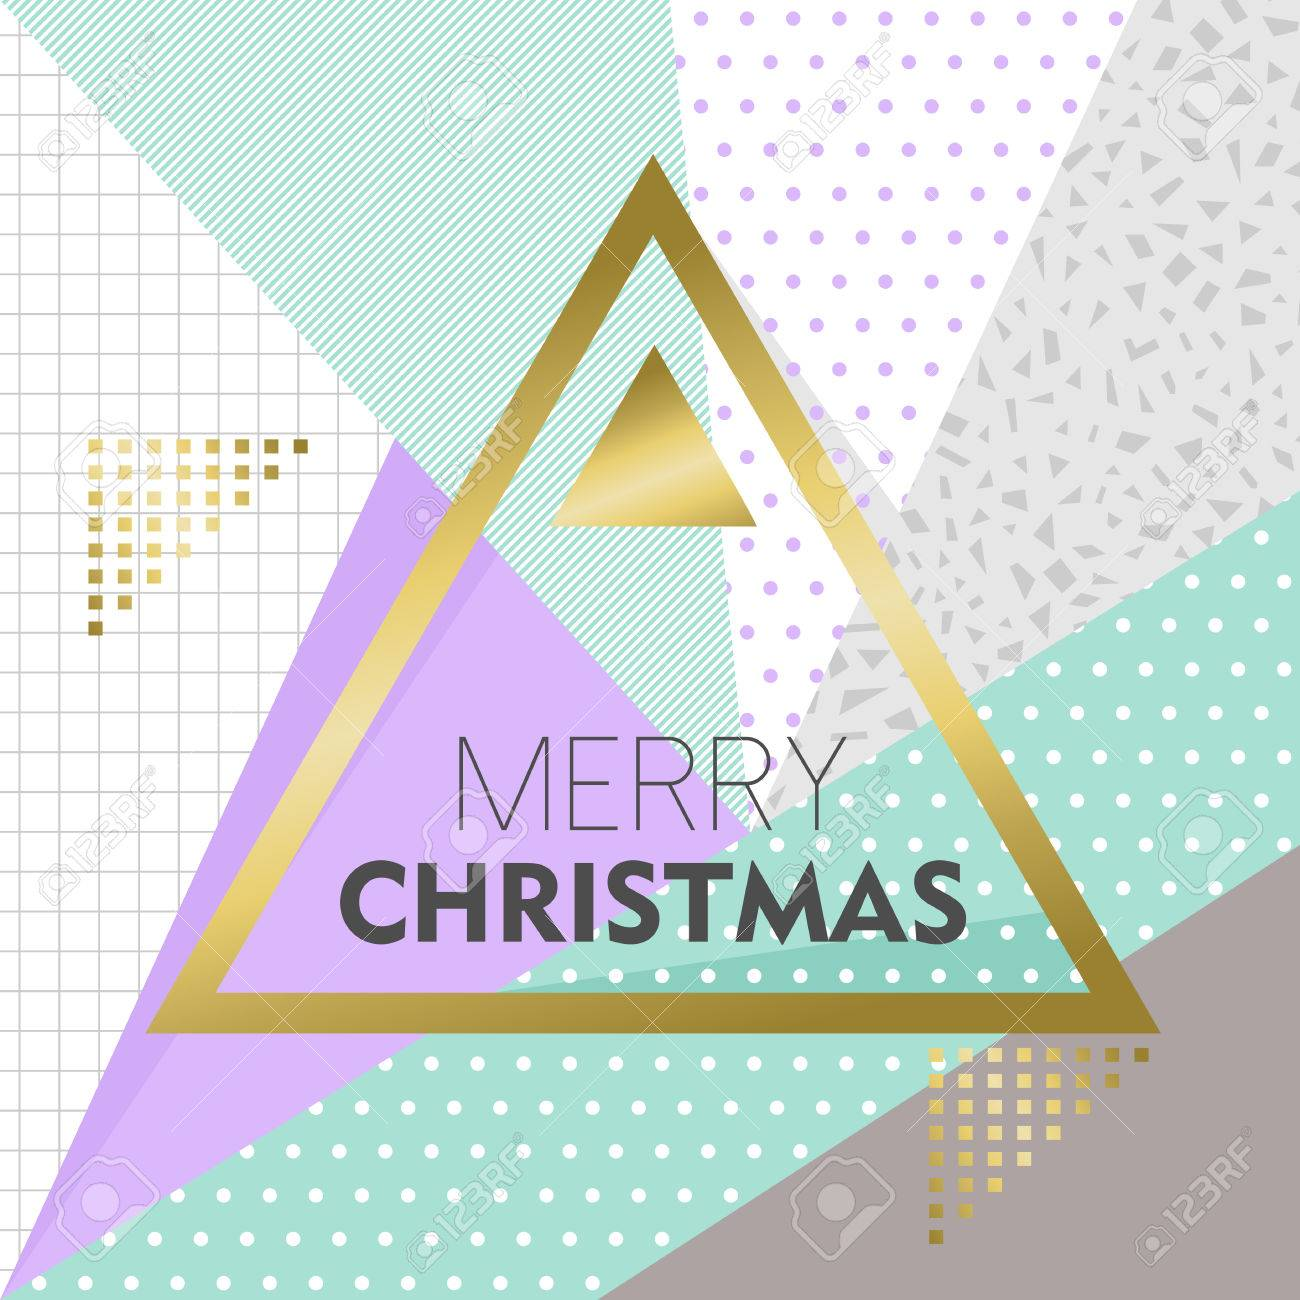 90s Christmas Background.Merry Christmas Design In Gold Color For Holiday Season On Retro